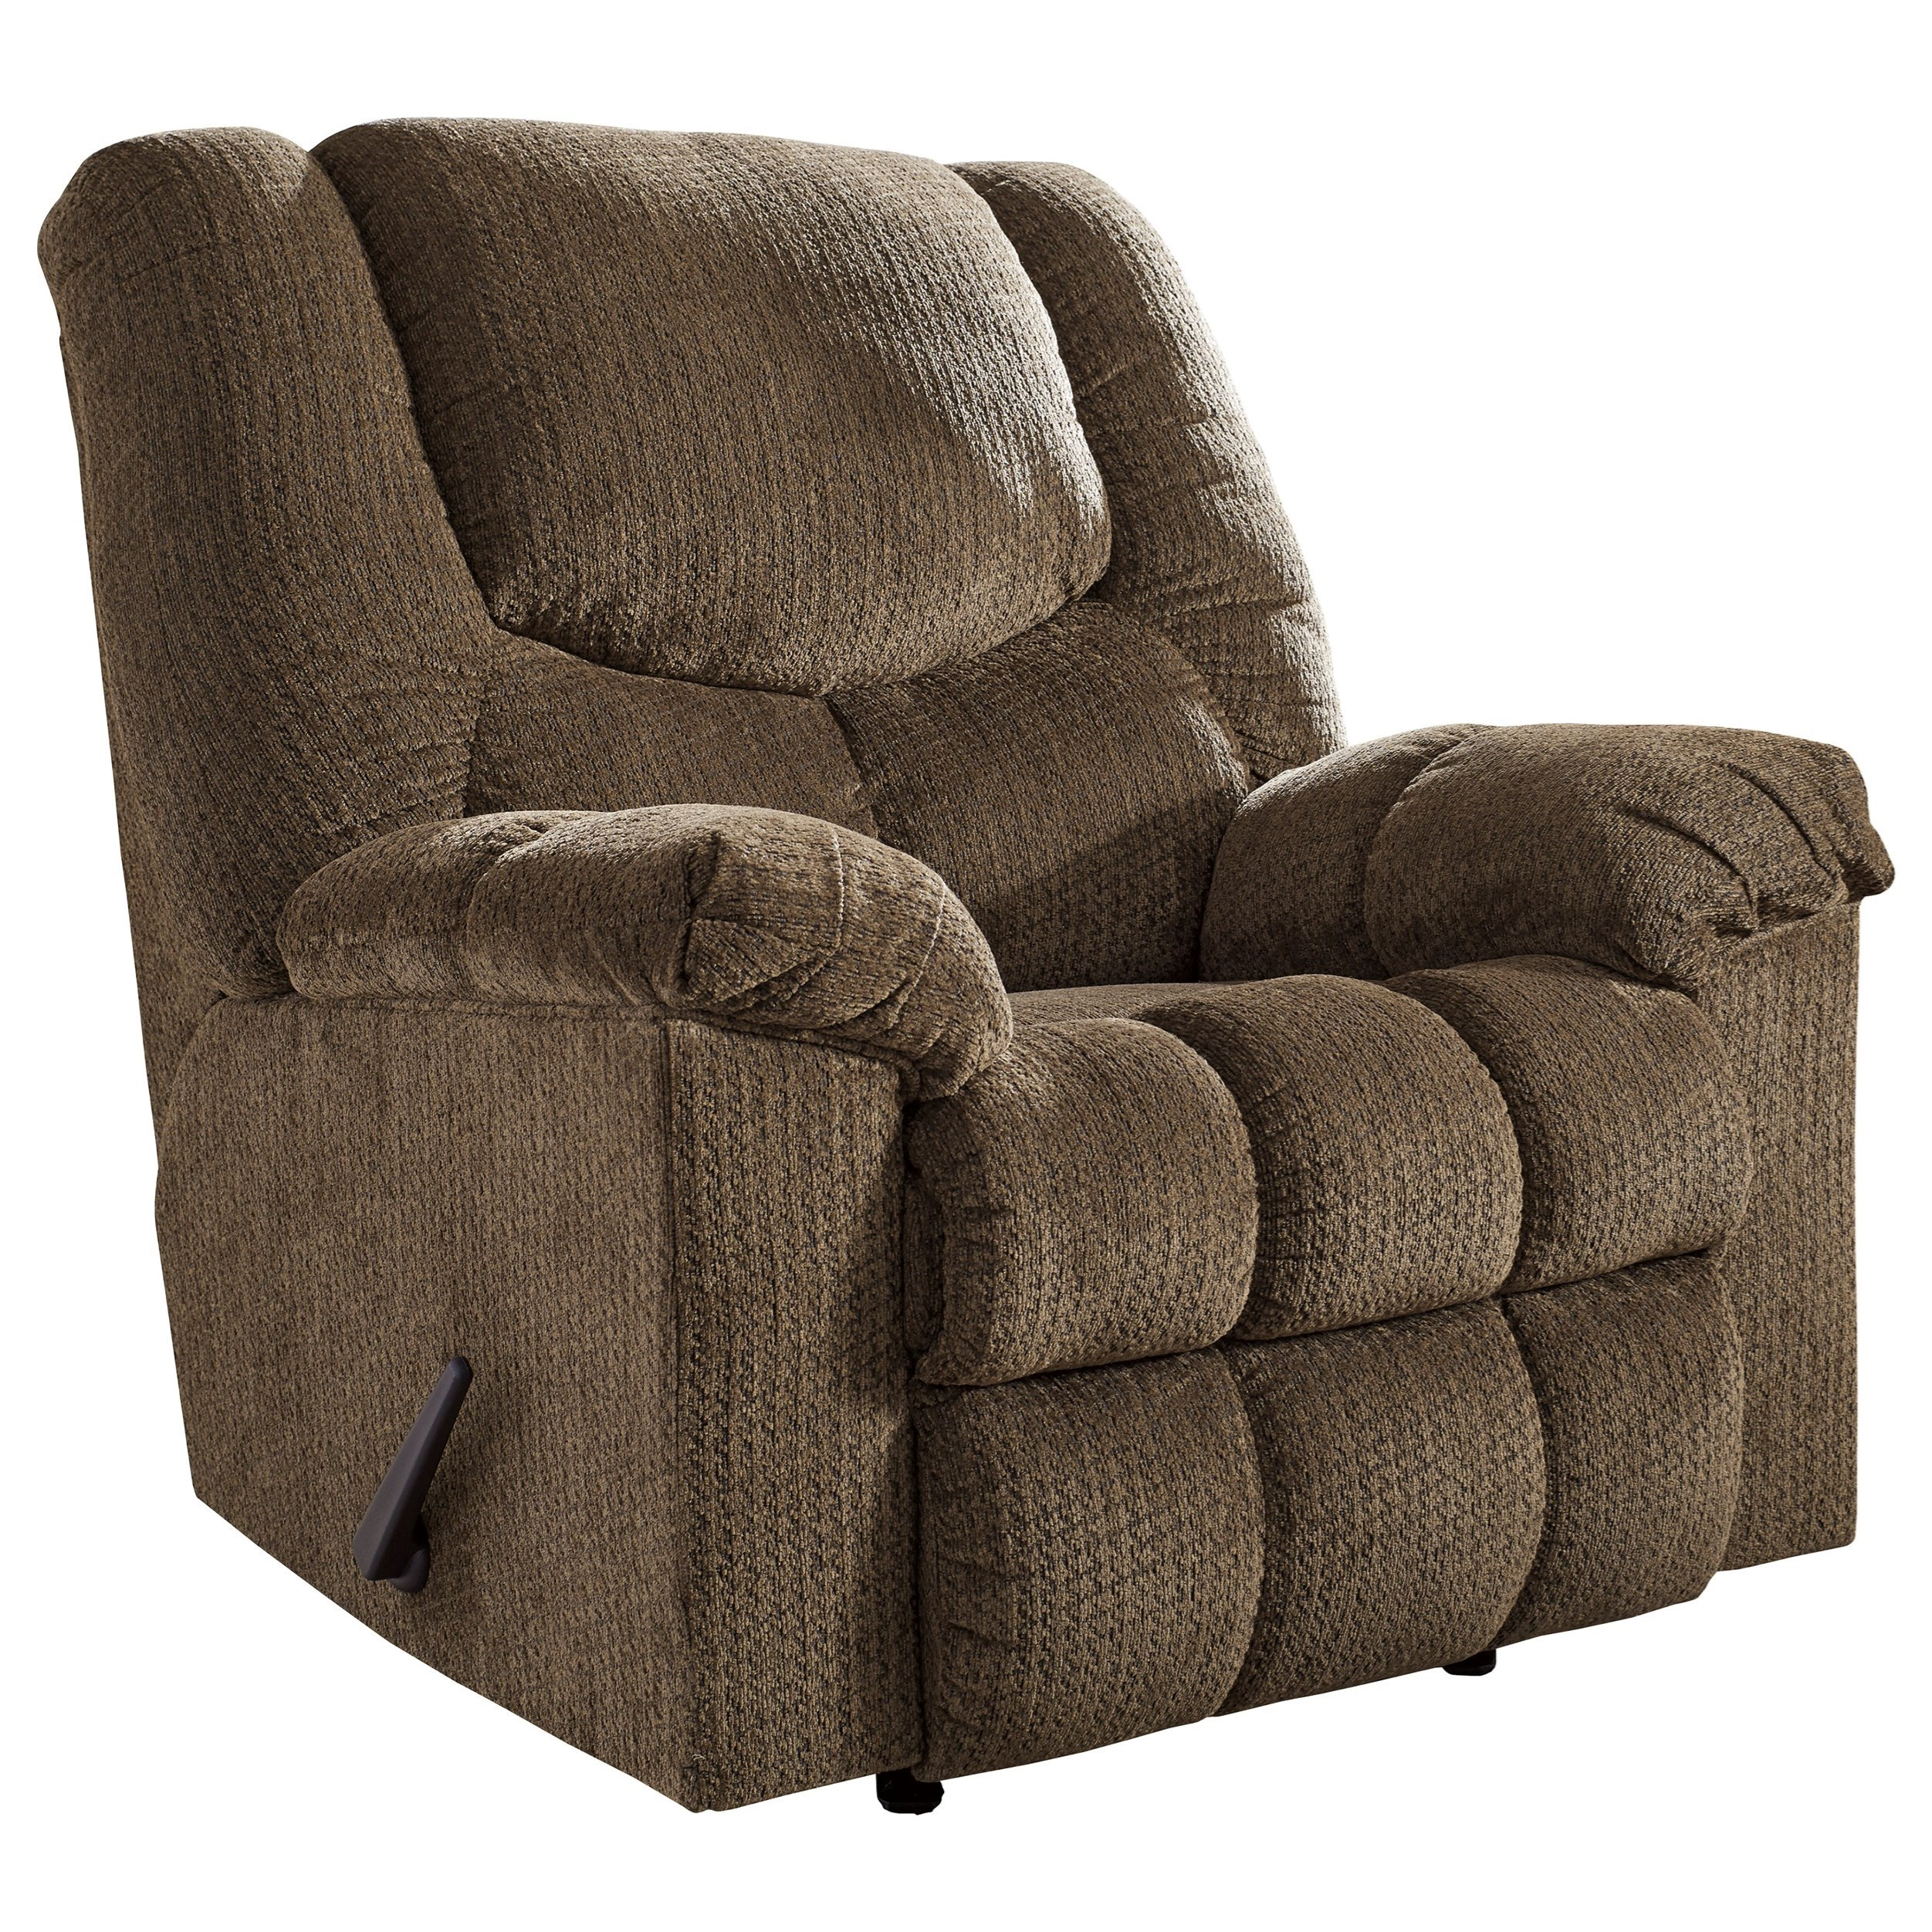 Signature Design by Ashley Turboprop Rocker Recliner - Item Number: 5000625